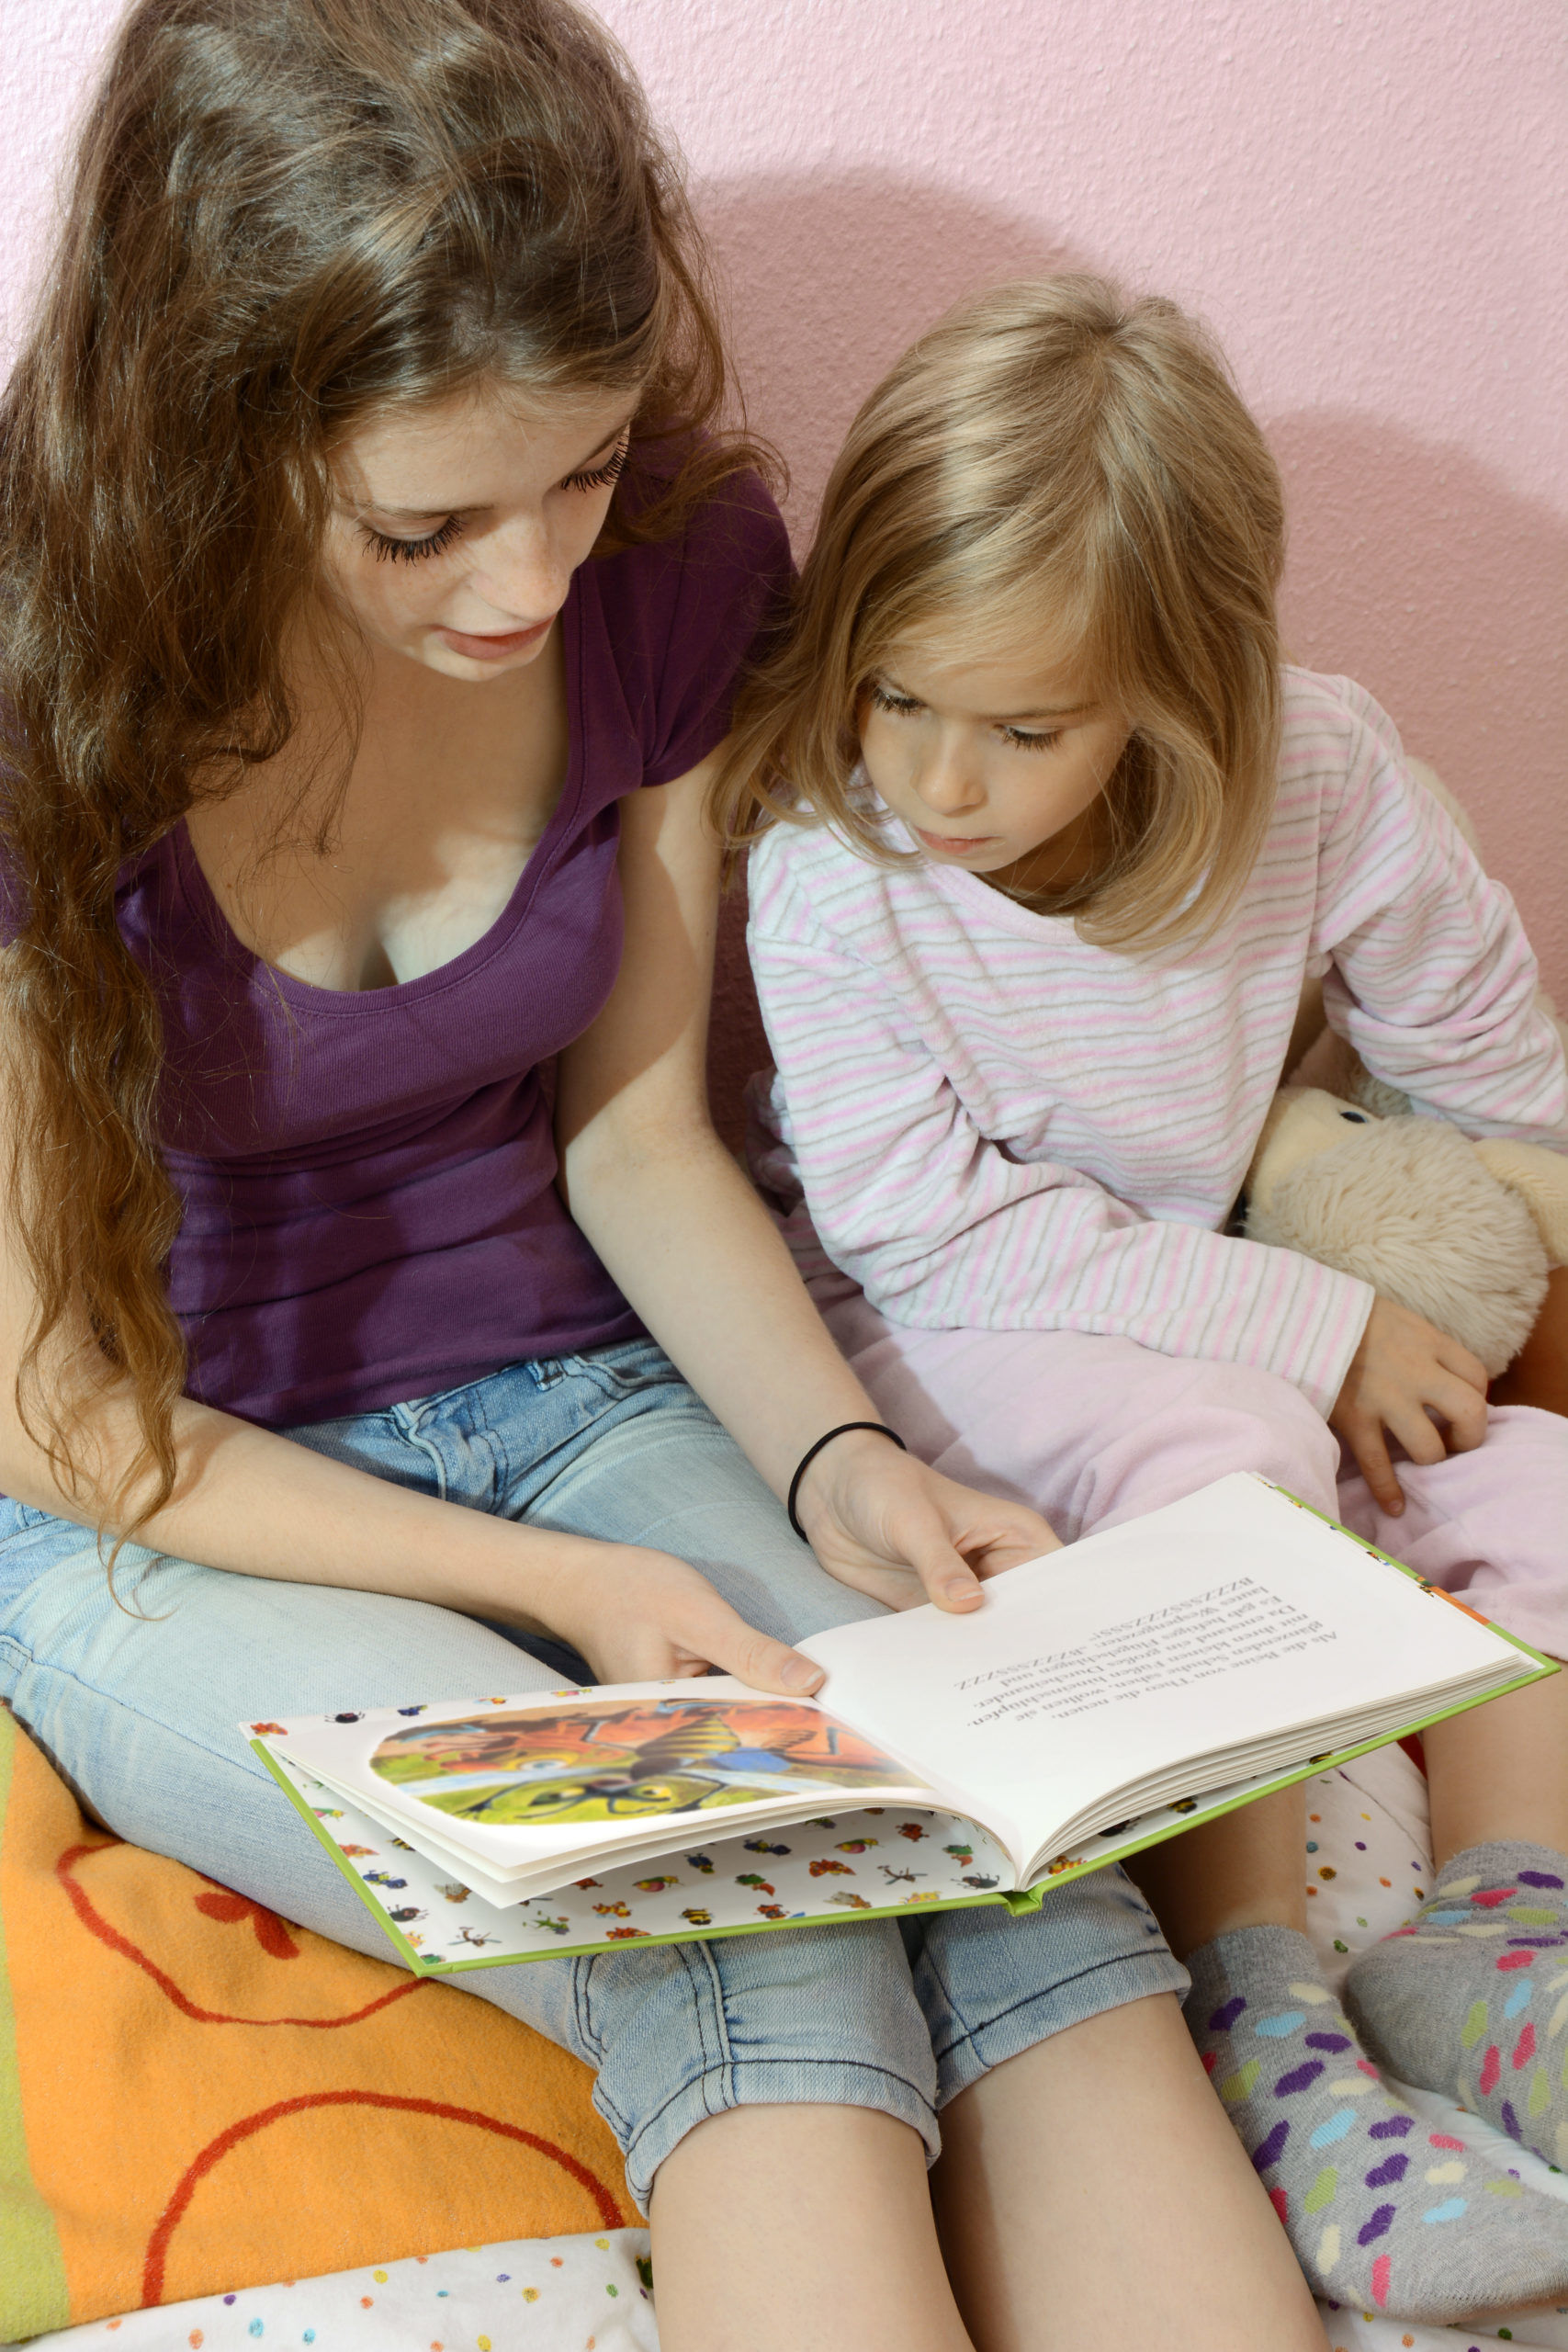 Read aloud and read children's books together